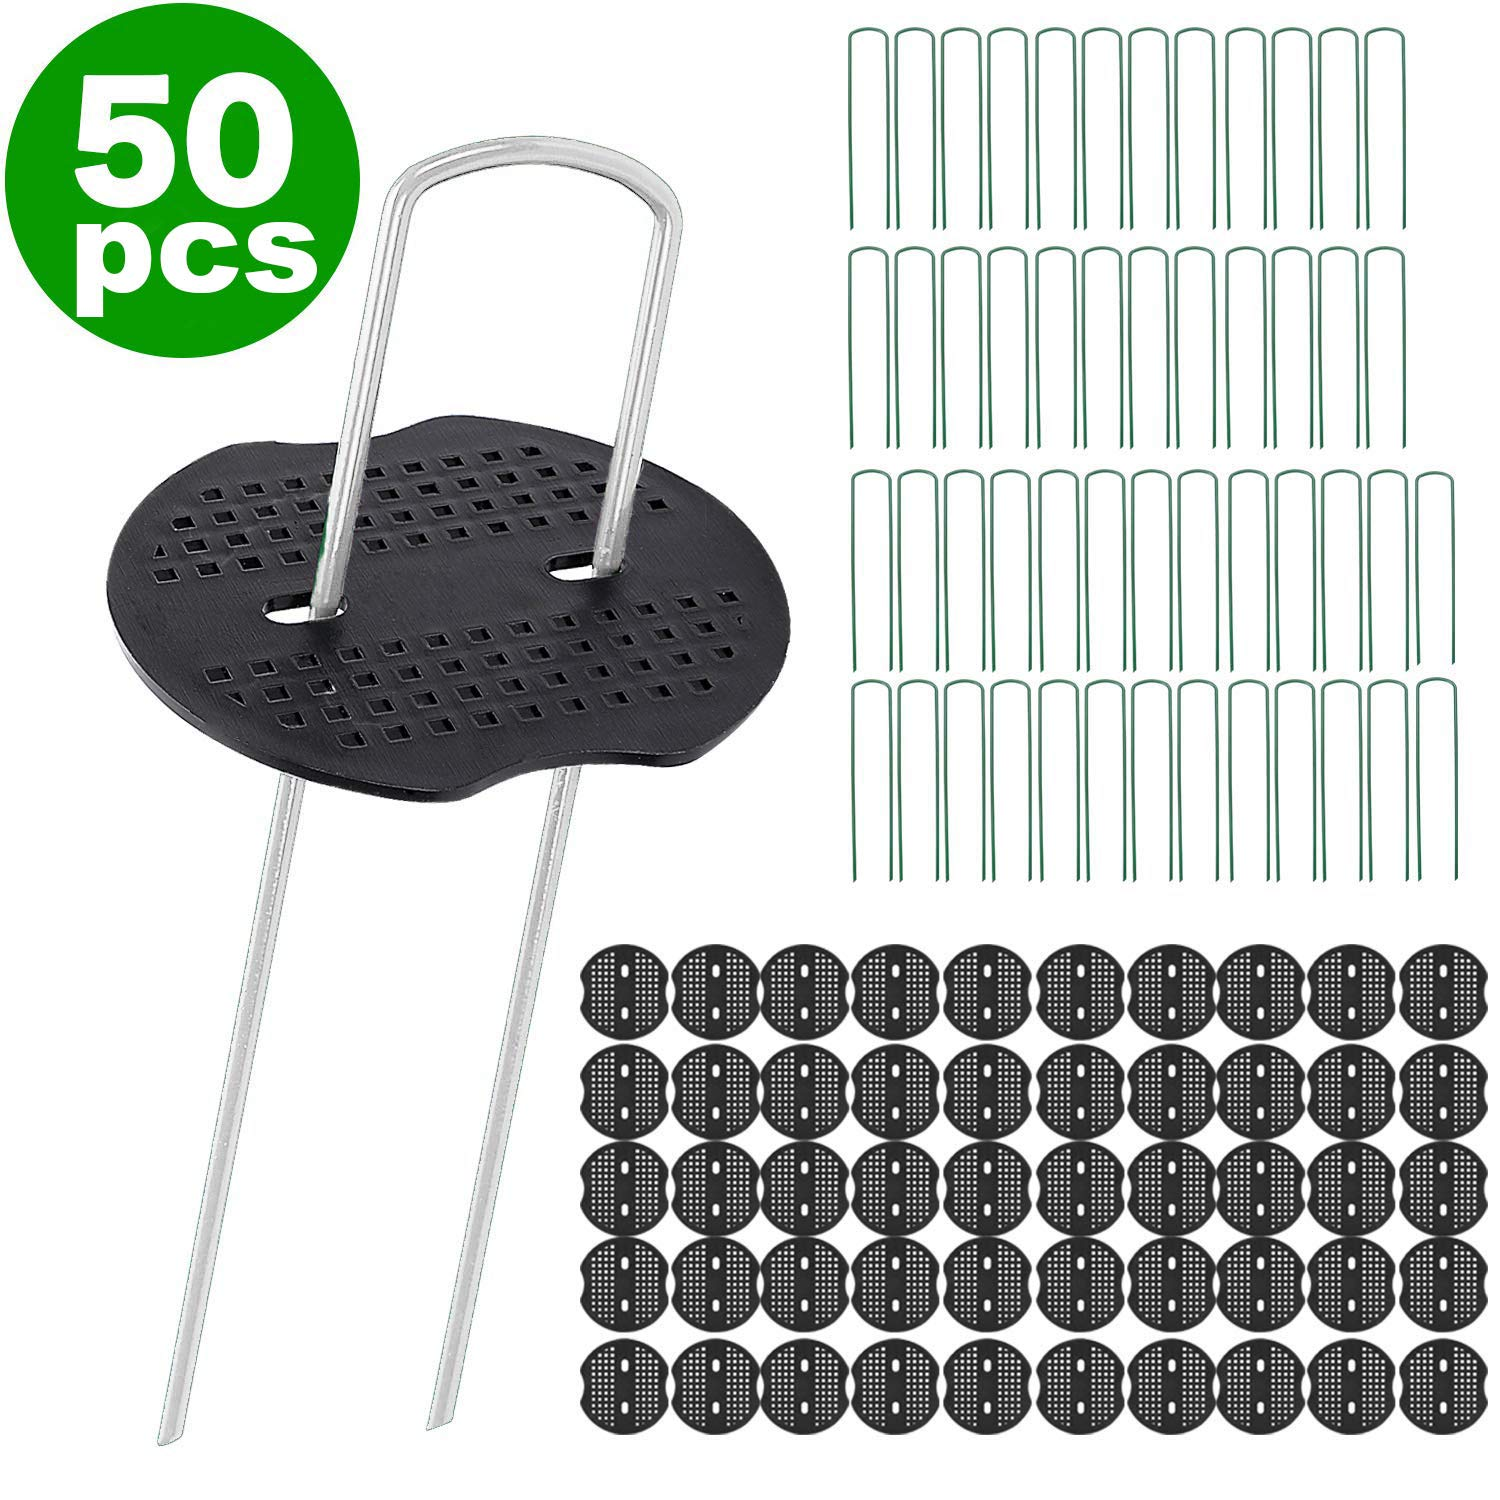 IETFULL Landscape Staples, 6 Inch Galvanized Steel Garden Staples with Black Pad for Landscape Fabric Supplies for Weed Barrier,Plant Stakes,Ground Cover